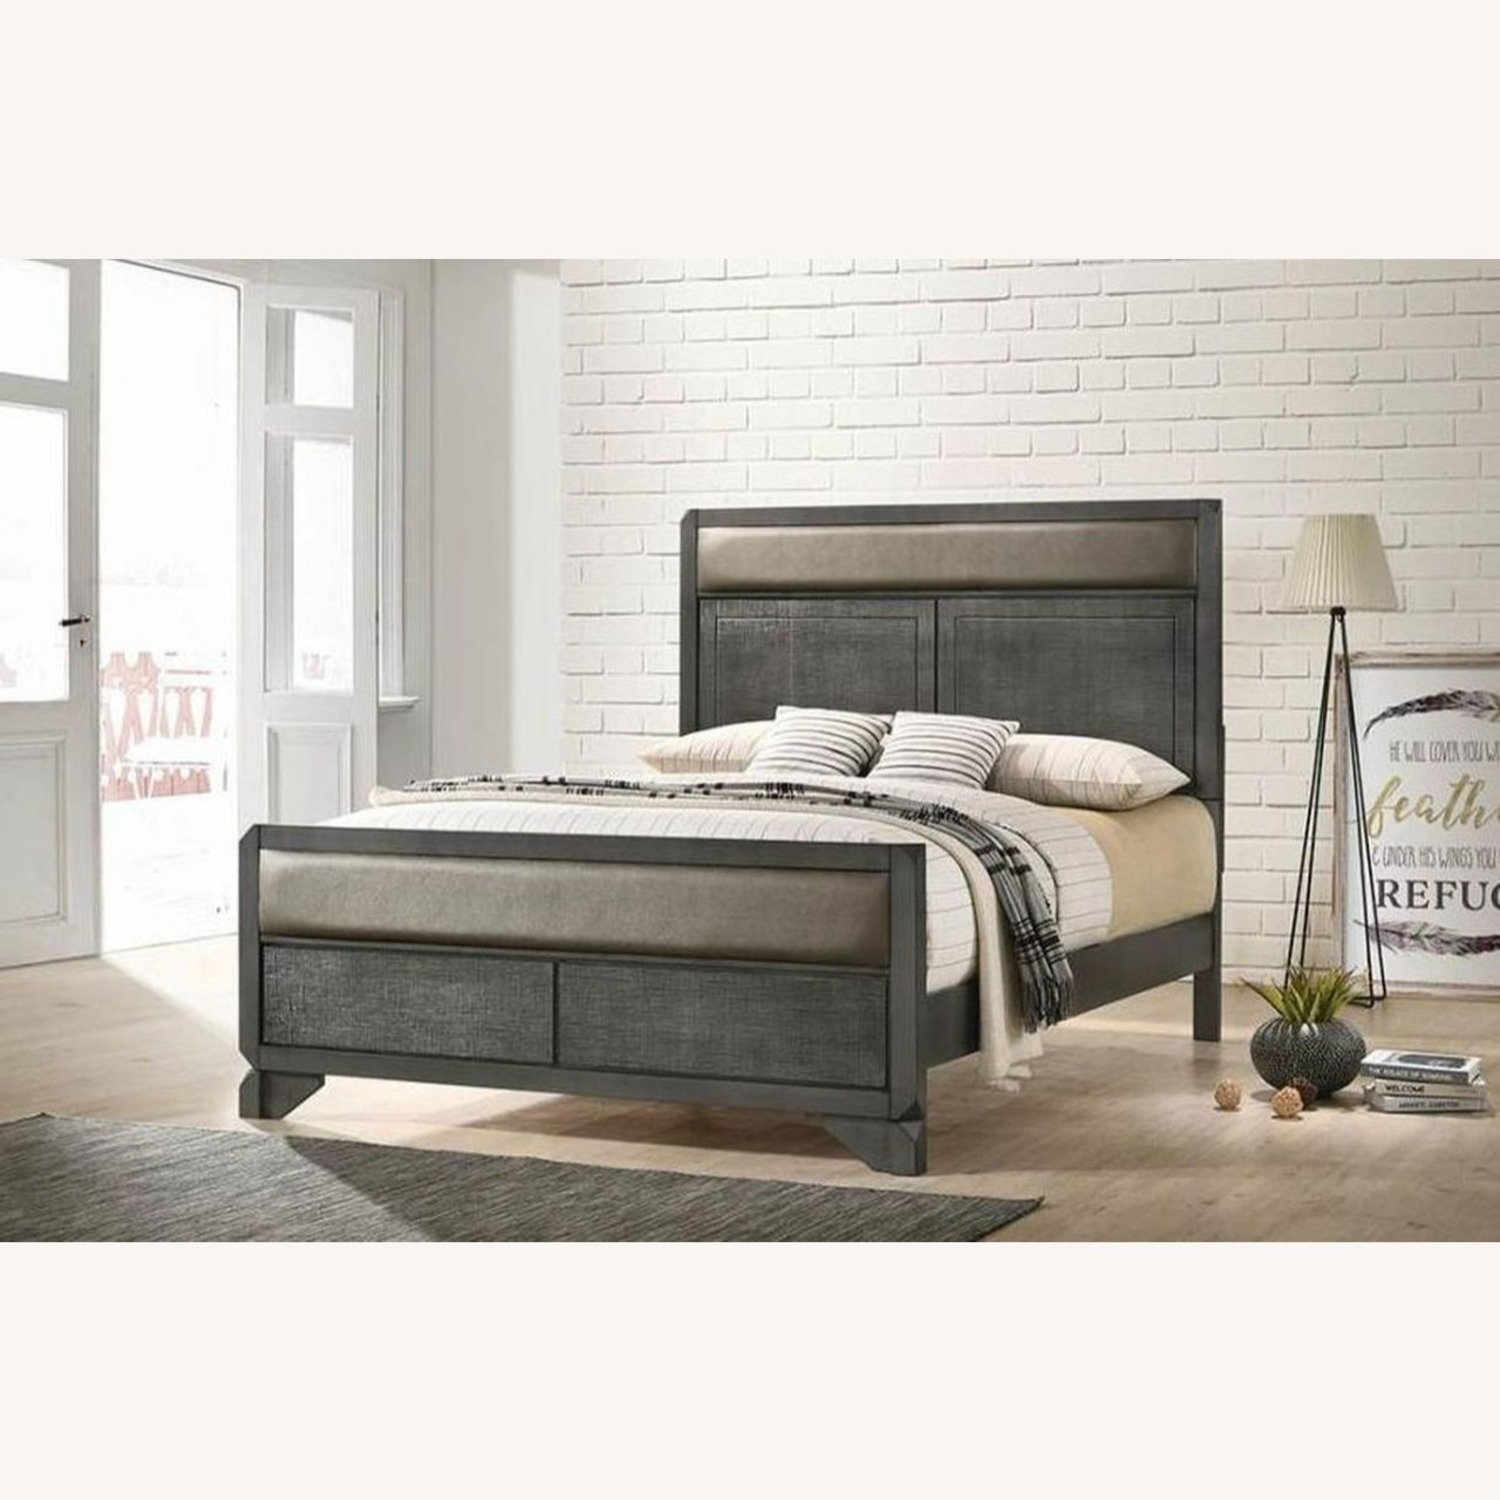 Elegant Queen Bed In Grey Leatherette Panels - image-2